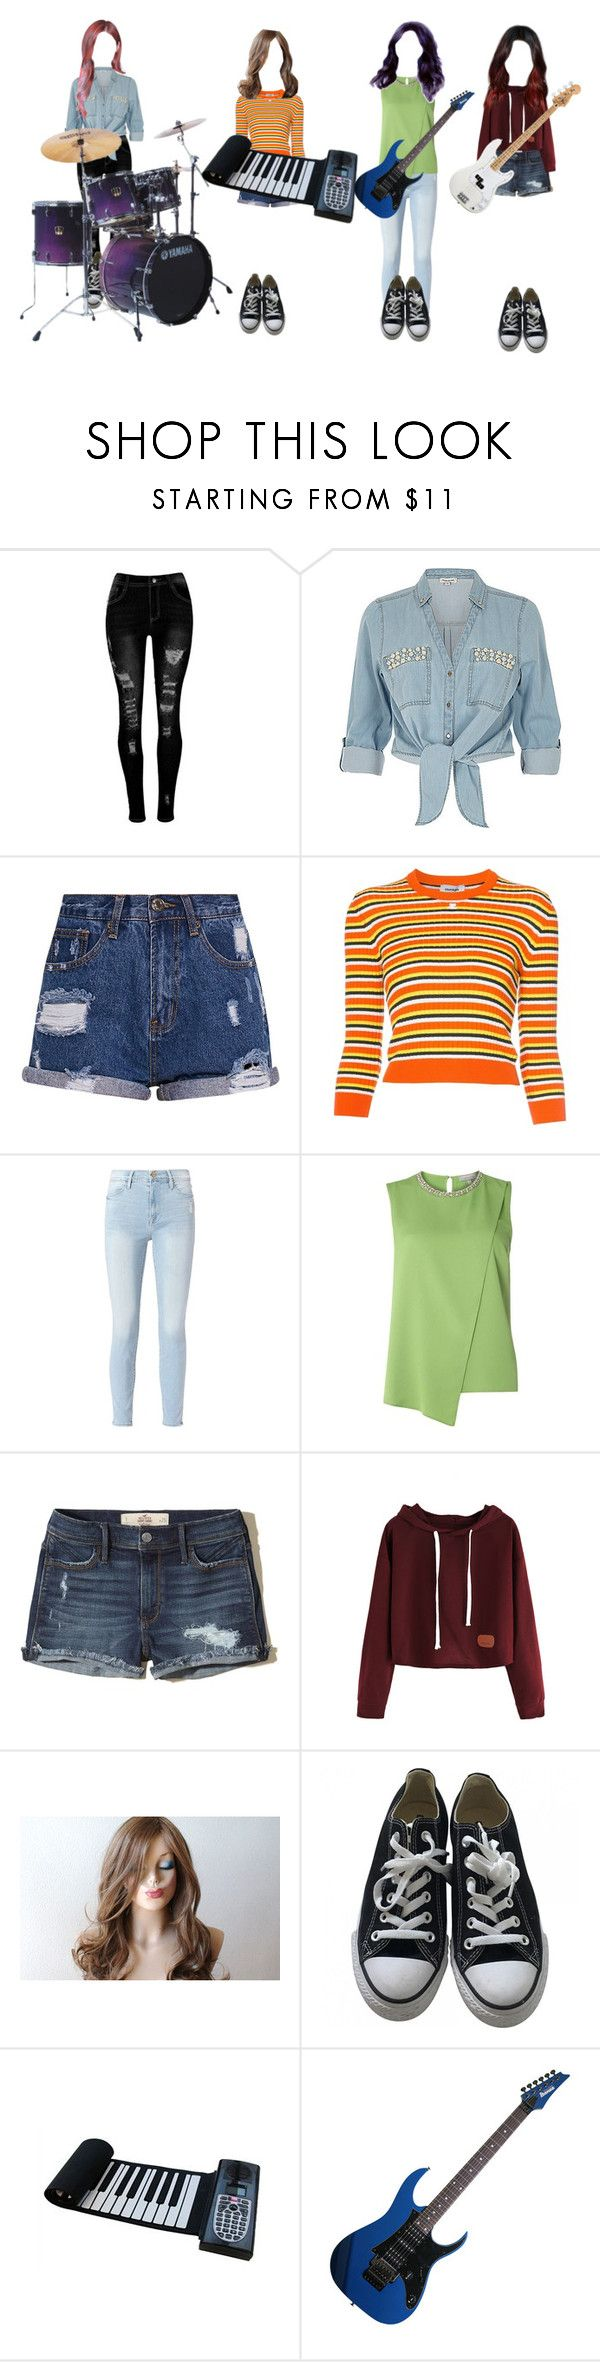 """Star Beam Band - AOA Band cover"" by princessmax ❤ liked on Polyvore featuring ZAK, Courrèges, Frame, Dorothy Perkins, Hollister Co., Converse and Yamaha"